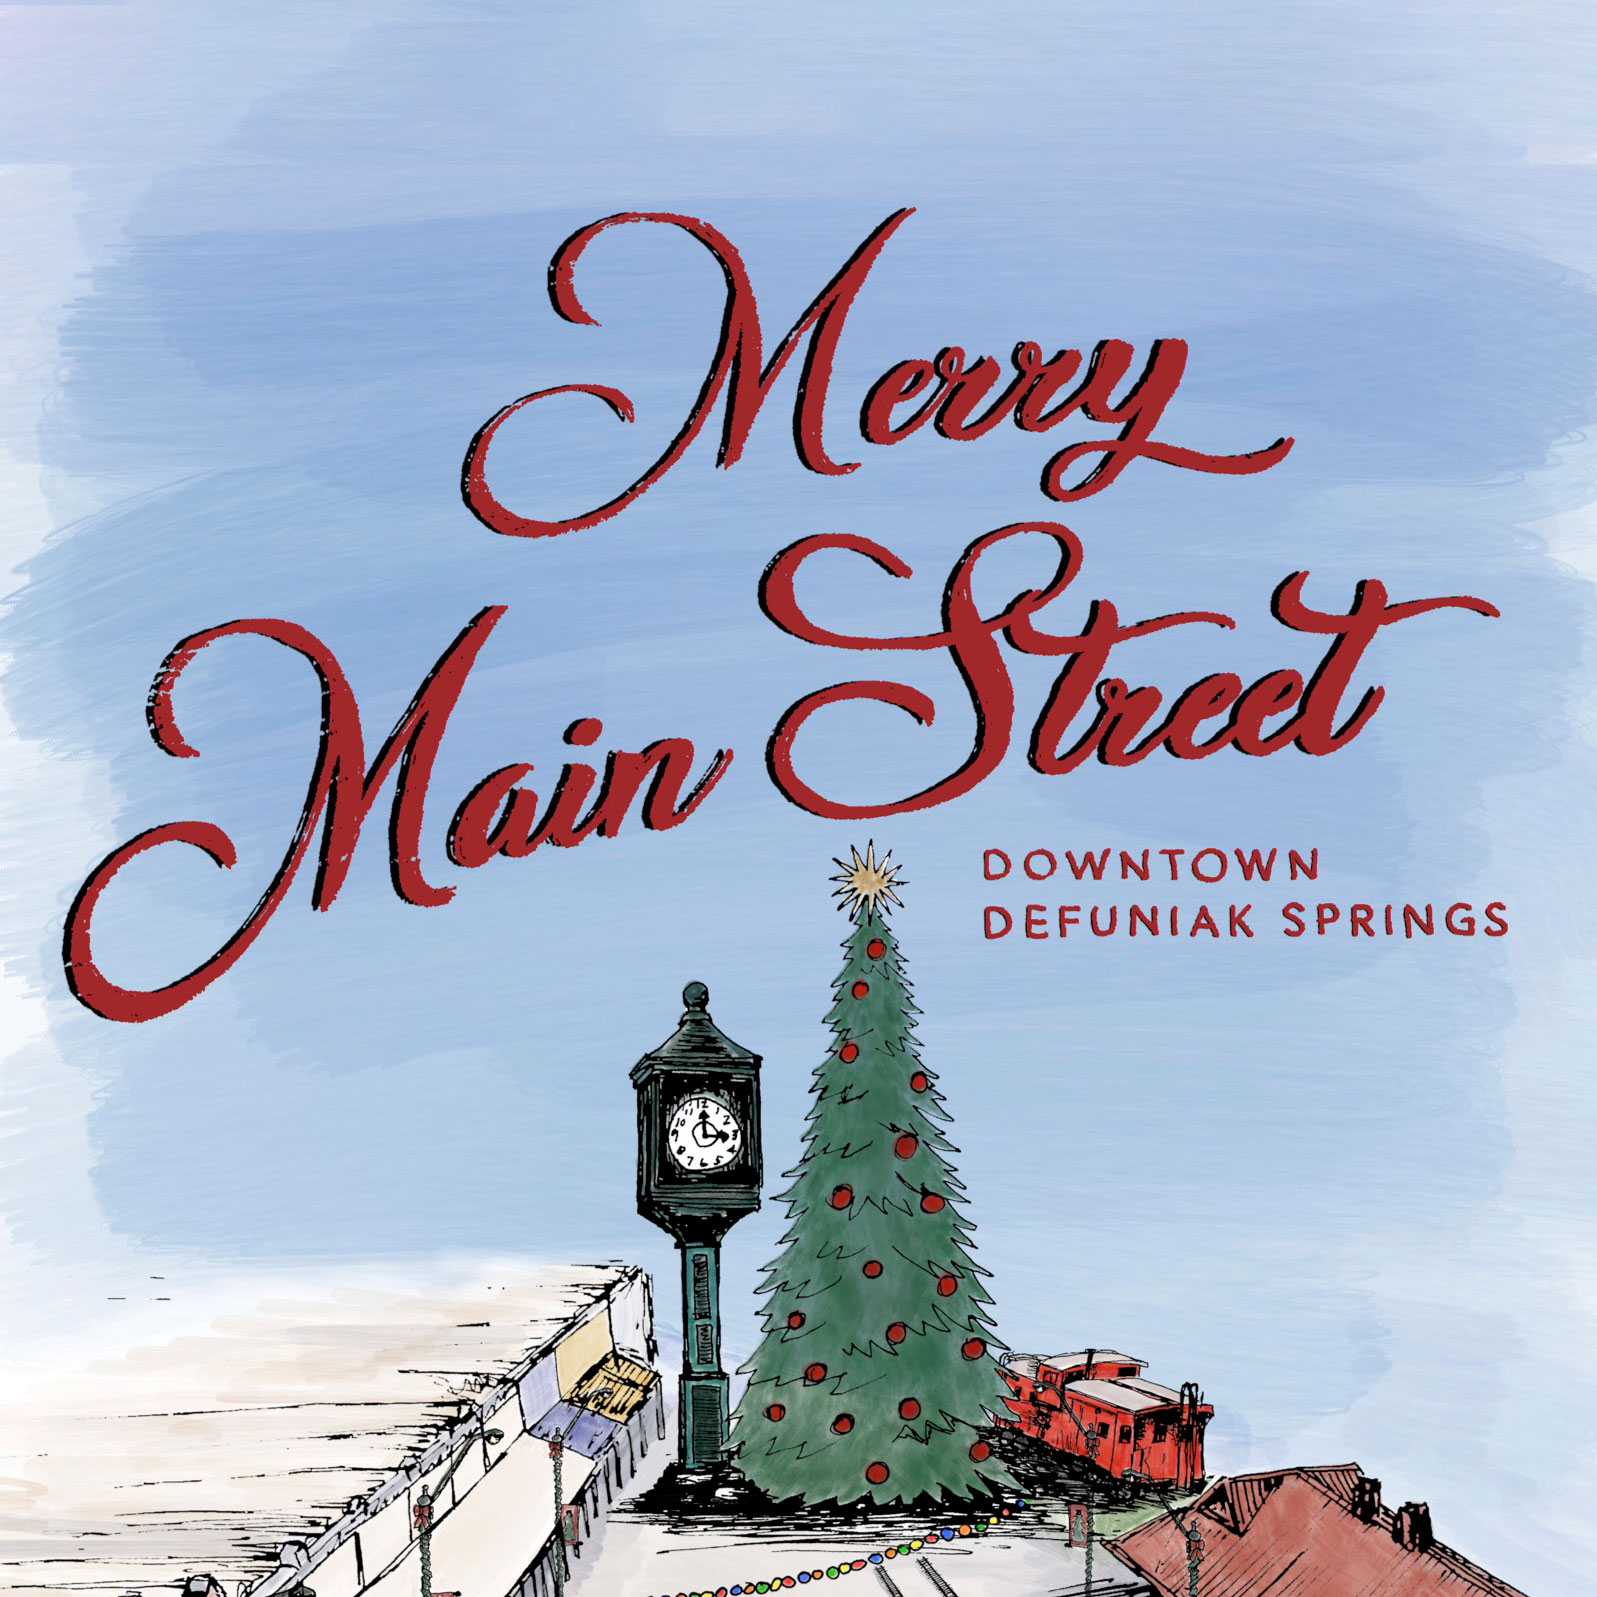 Merry Main Street illustration of Christmas decorations in downtown DeFuniak Springs